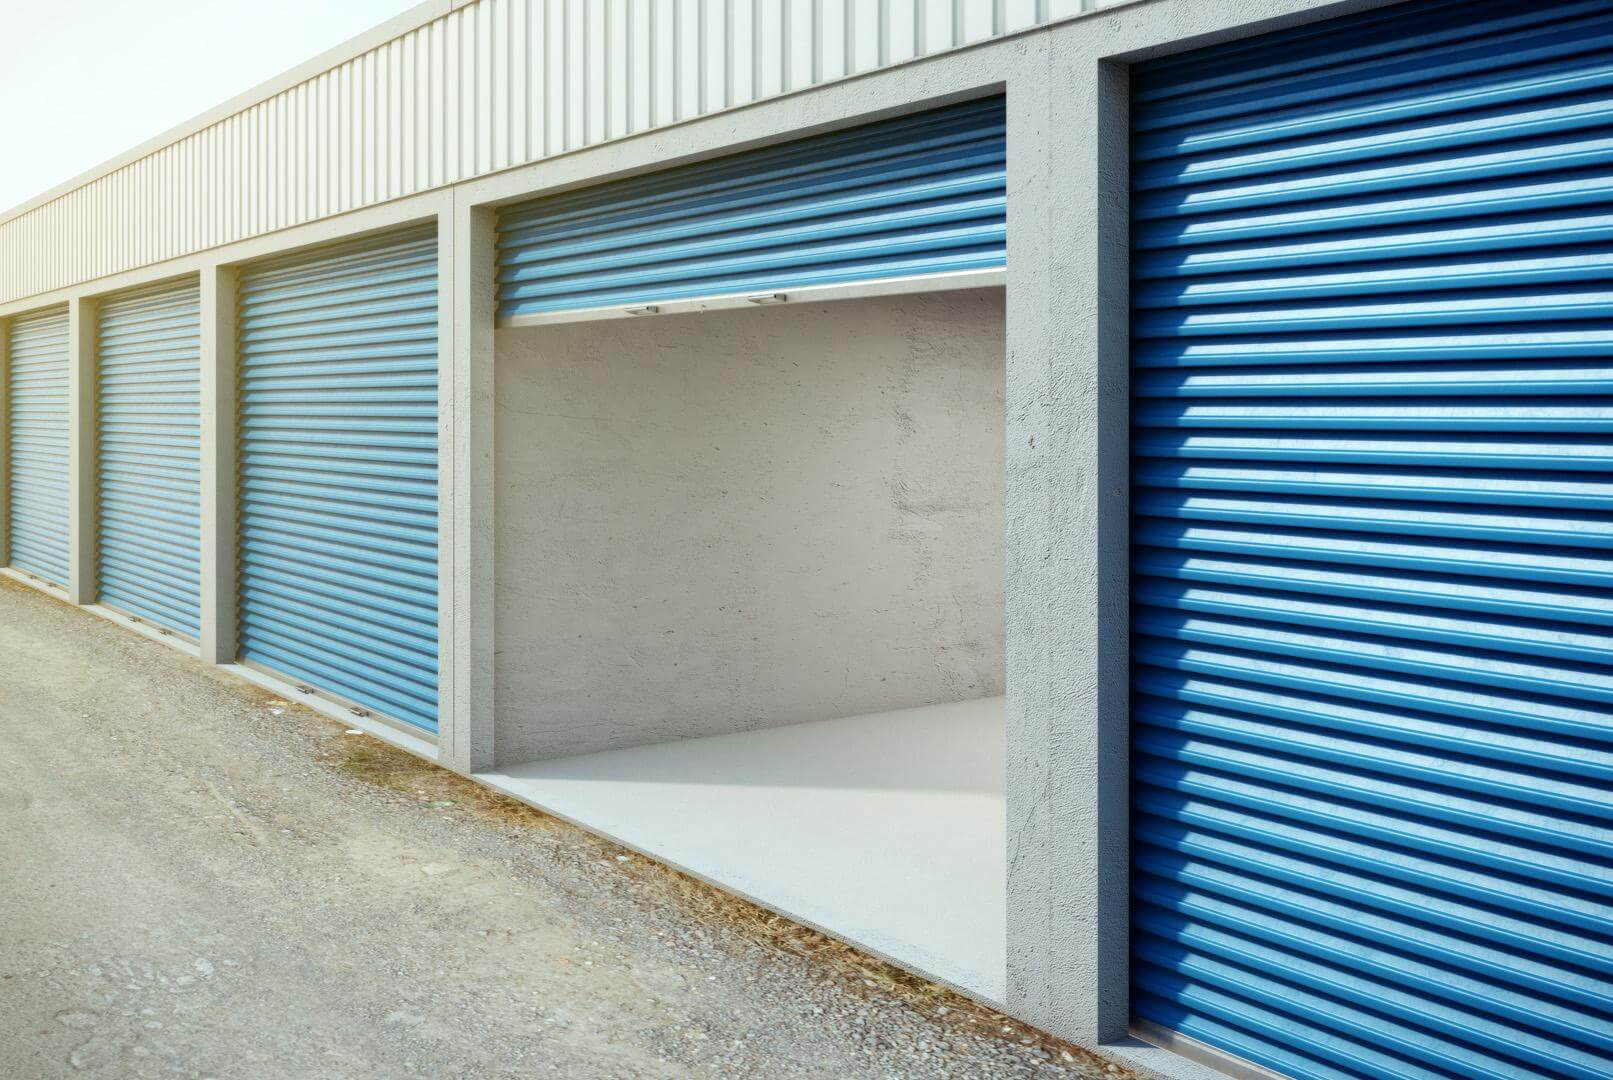 Find the reliable professionals for Emergency Roller Shutter Repair & Maintenance